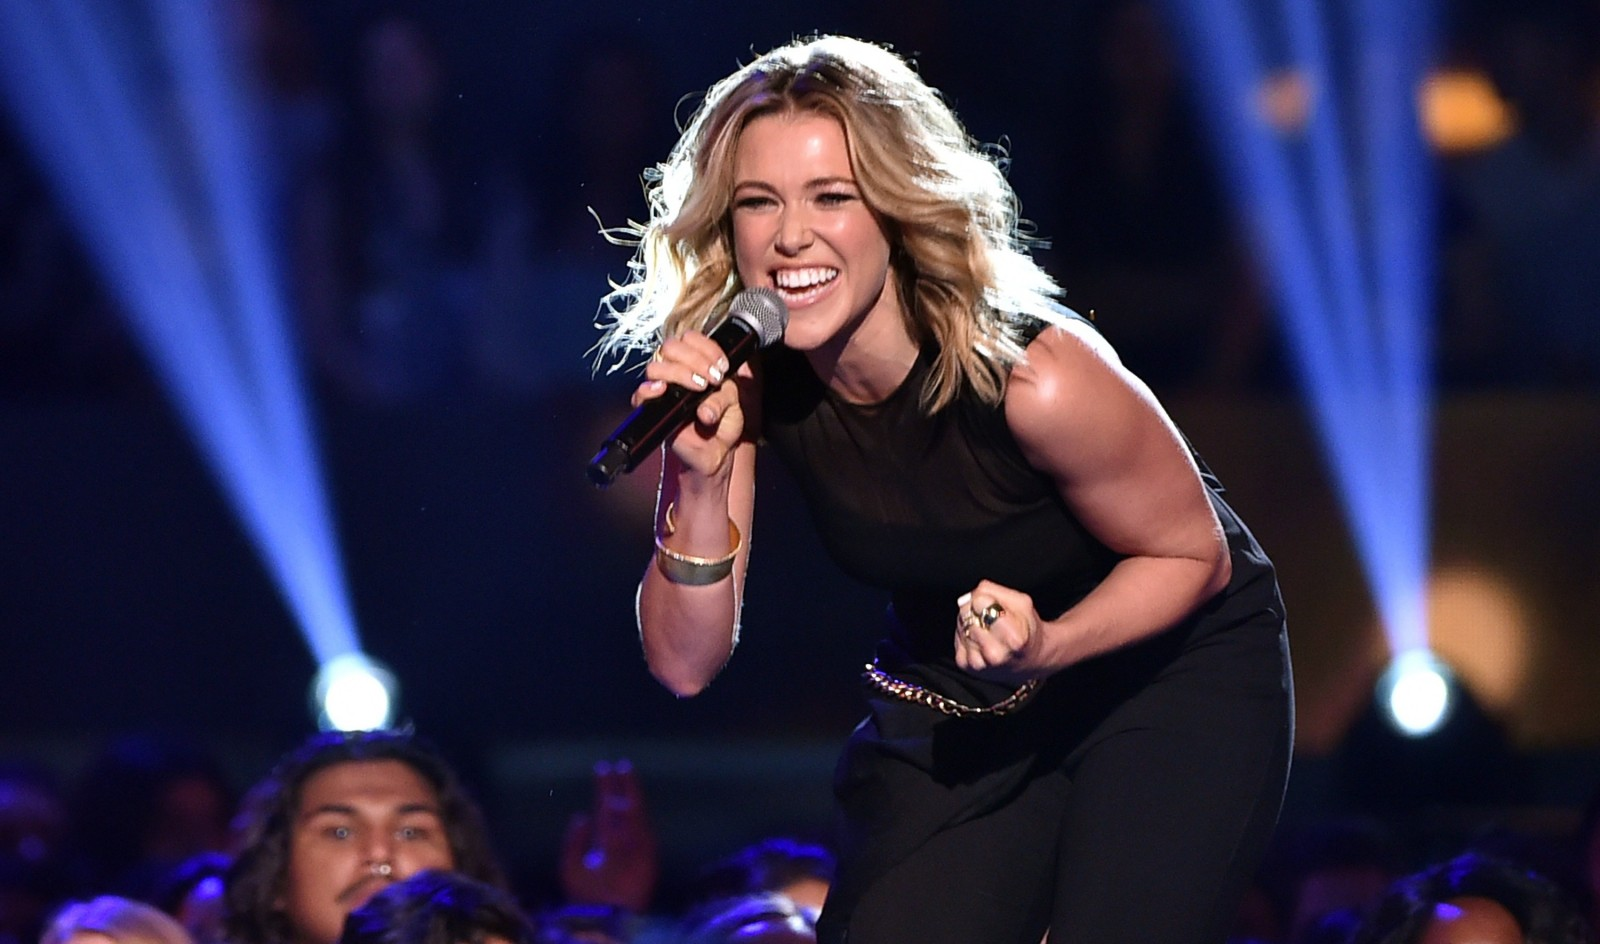 A concert by Rachel Platten is among the free shows planned for Darien Lake Theme Park in 2016. (Getty Images)